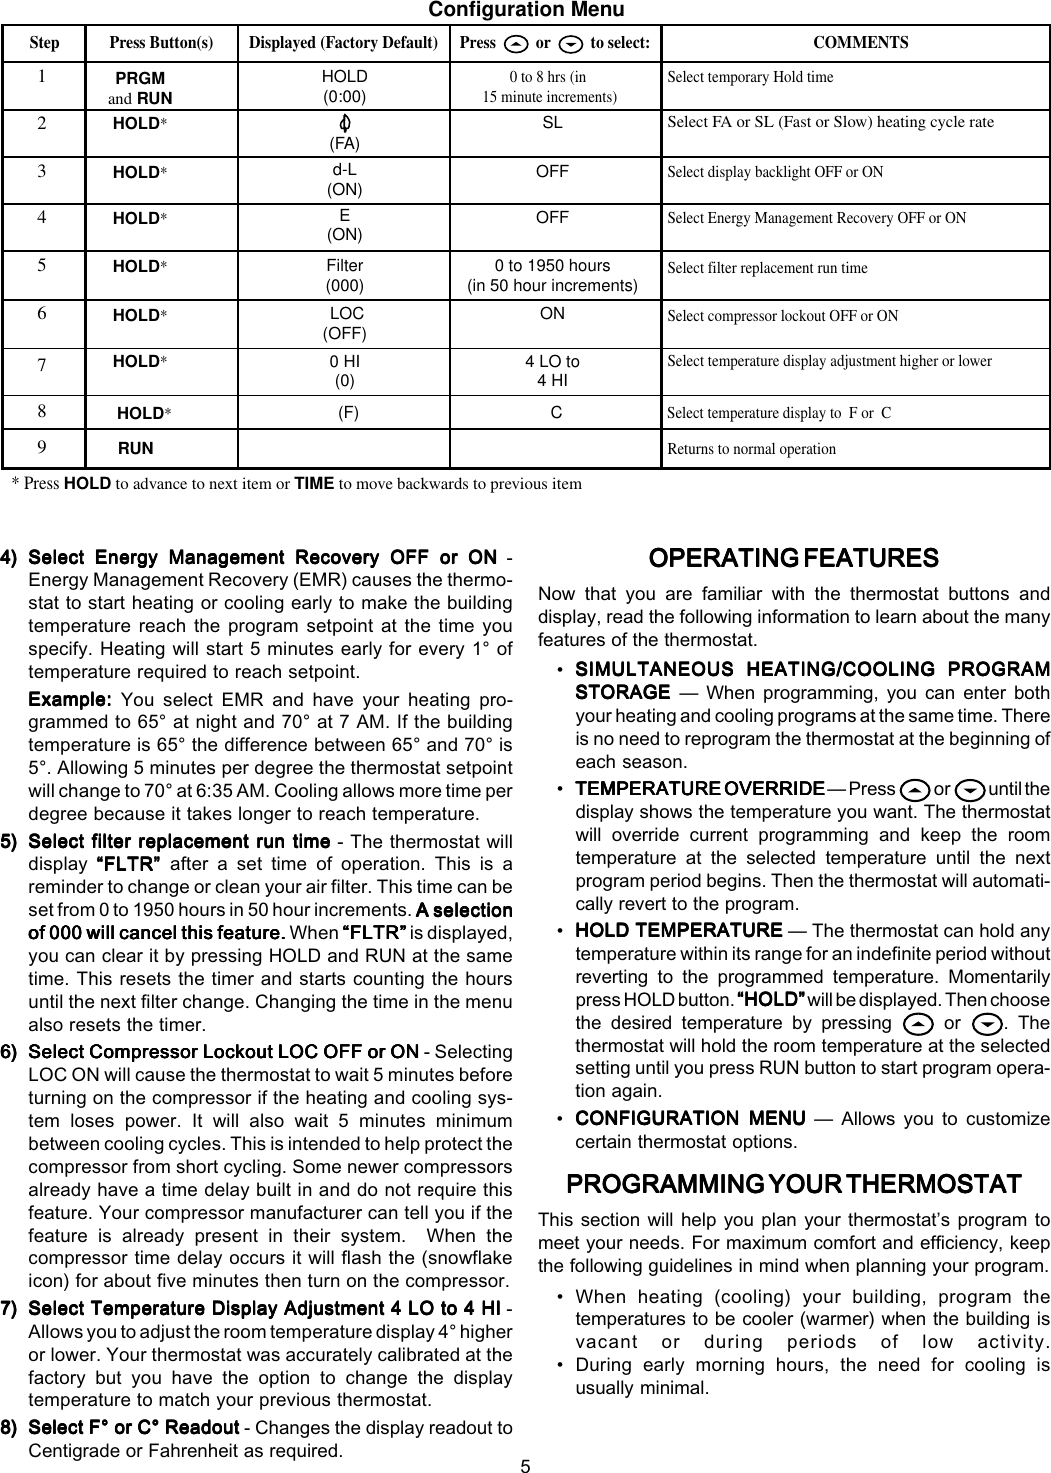 White Rodgers 1f80 261 Installation Manual 37 6288 Thermostat Wiring Diagram Page 5 Of 8